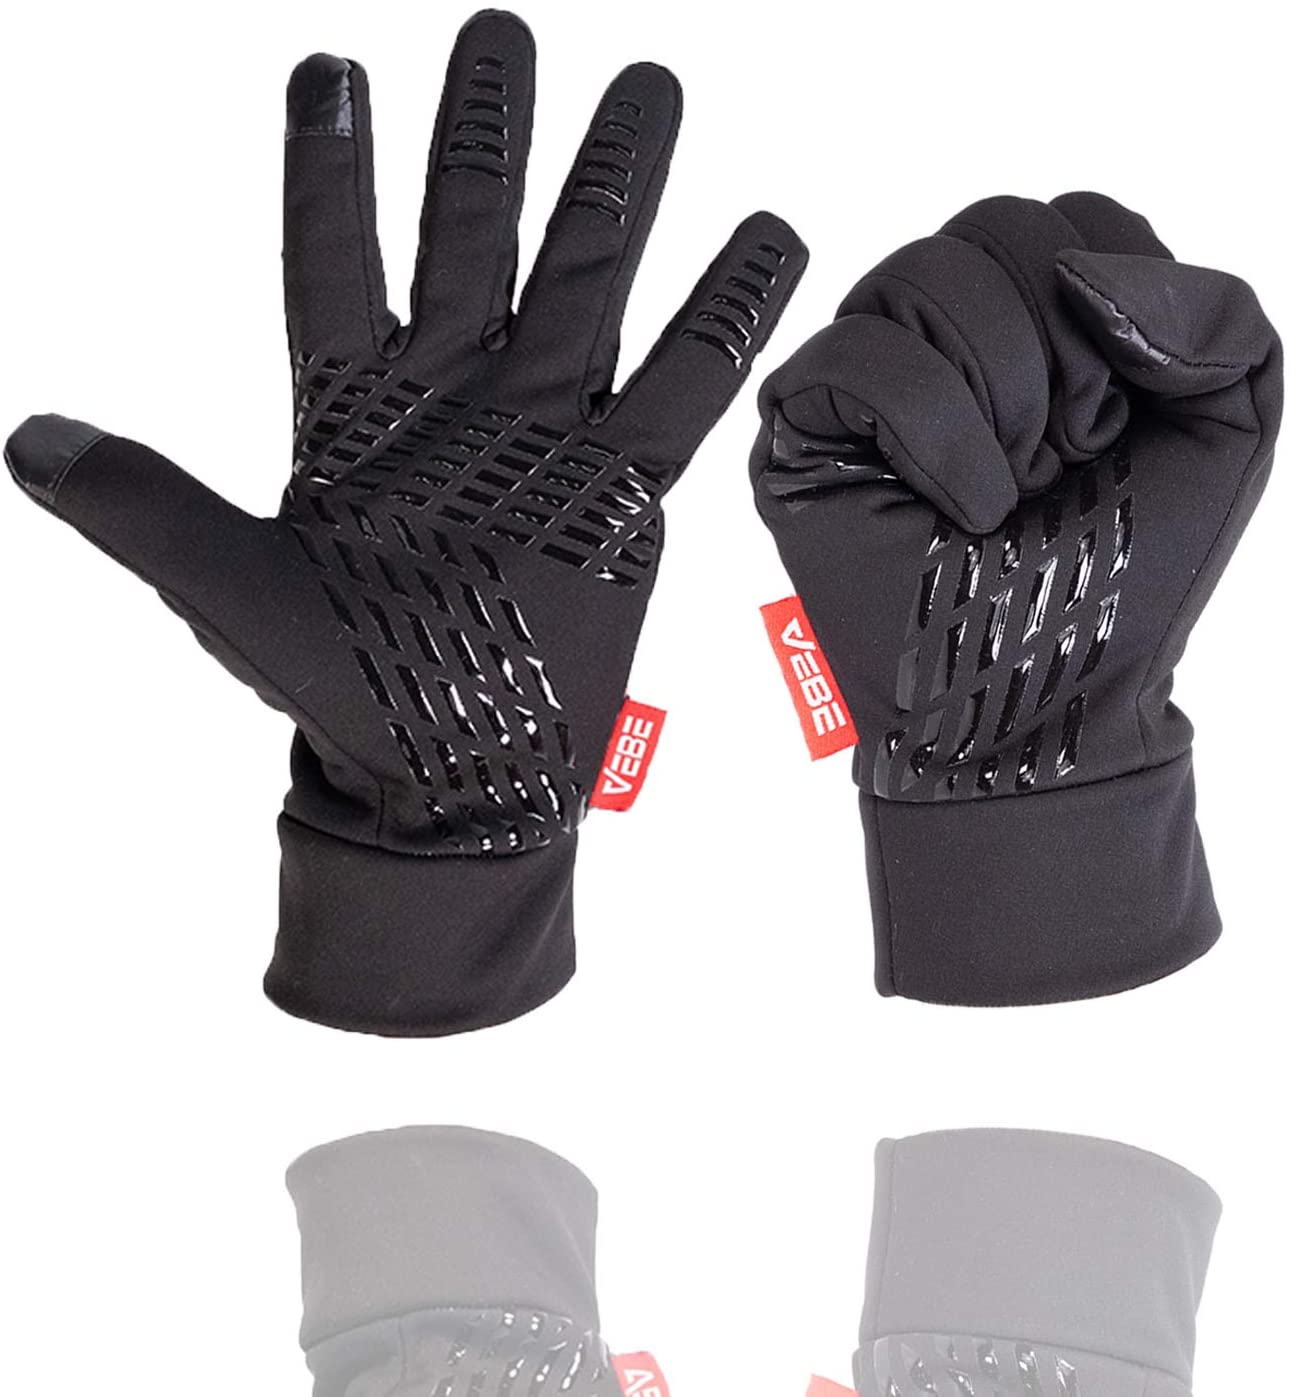 VEBE Lightweight Winter Gloves Touch Screen Cold Weather Running Gloves Water Resistant & Windproof Driving Biking Cycling Workout Gloves for Men & Women